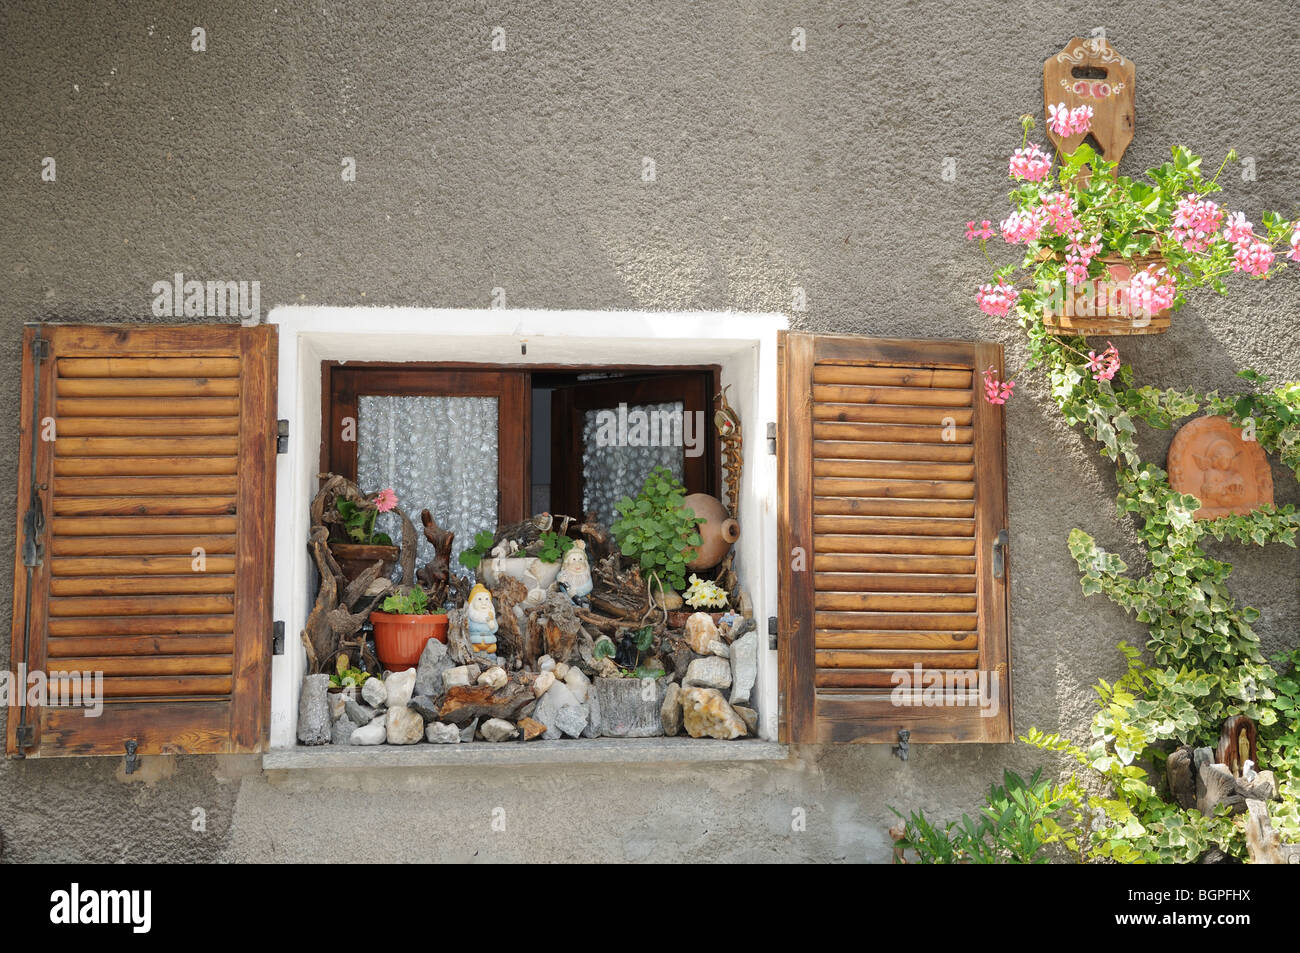 Charming window sill decorated with pepples stones flowers window box gnomes Pont St Martin Aosta Valley Italy Stock Photo